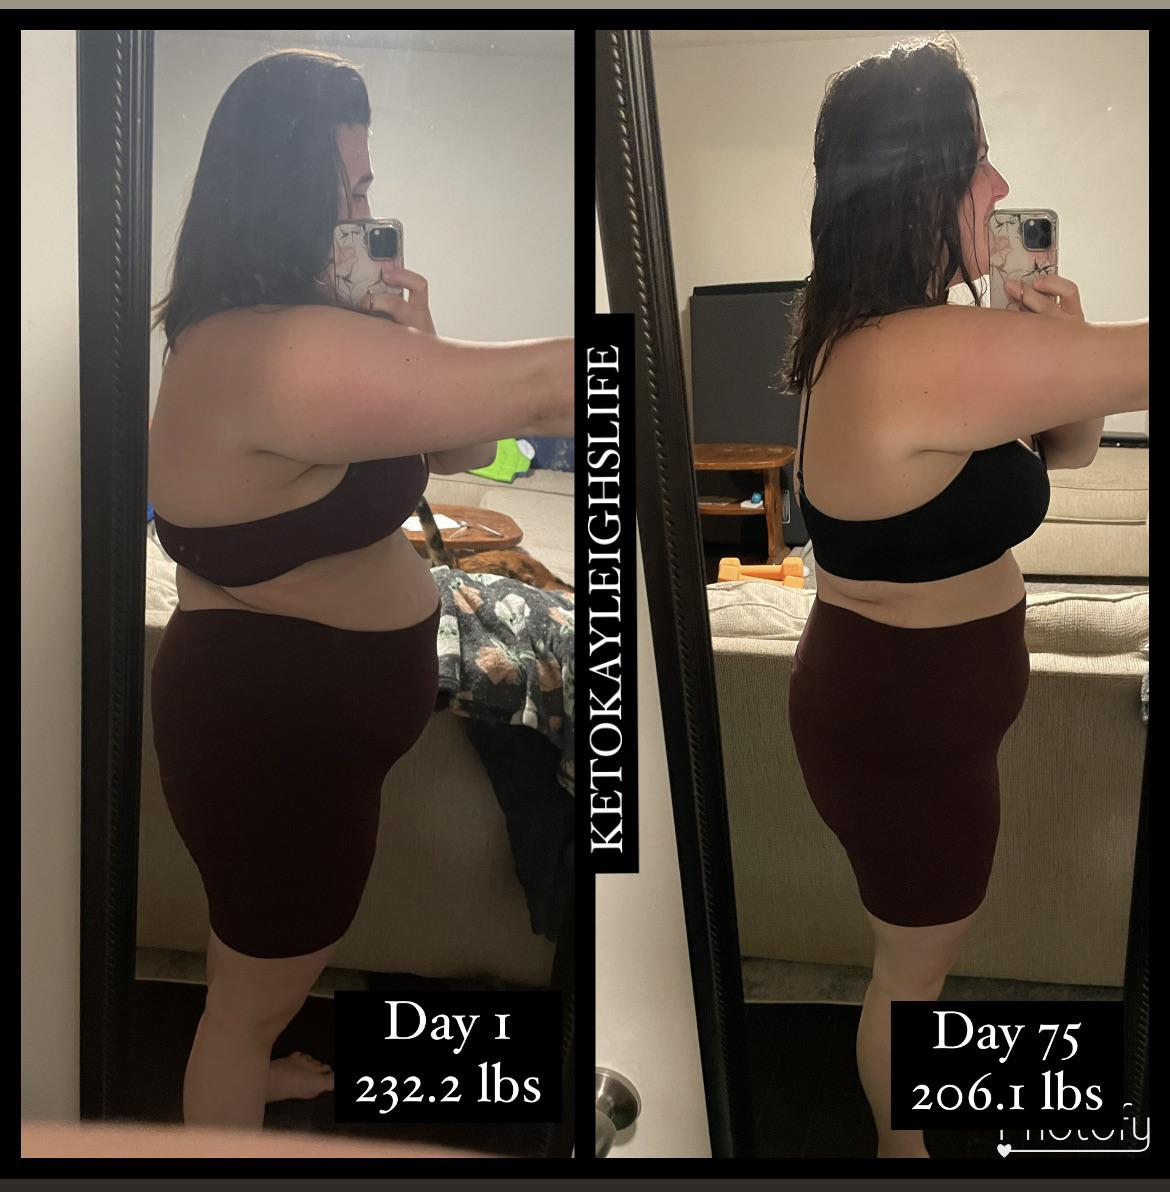 26 lbs Weight Loss 5 foot 6 Female 232 lbs to 206 lbs